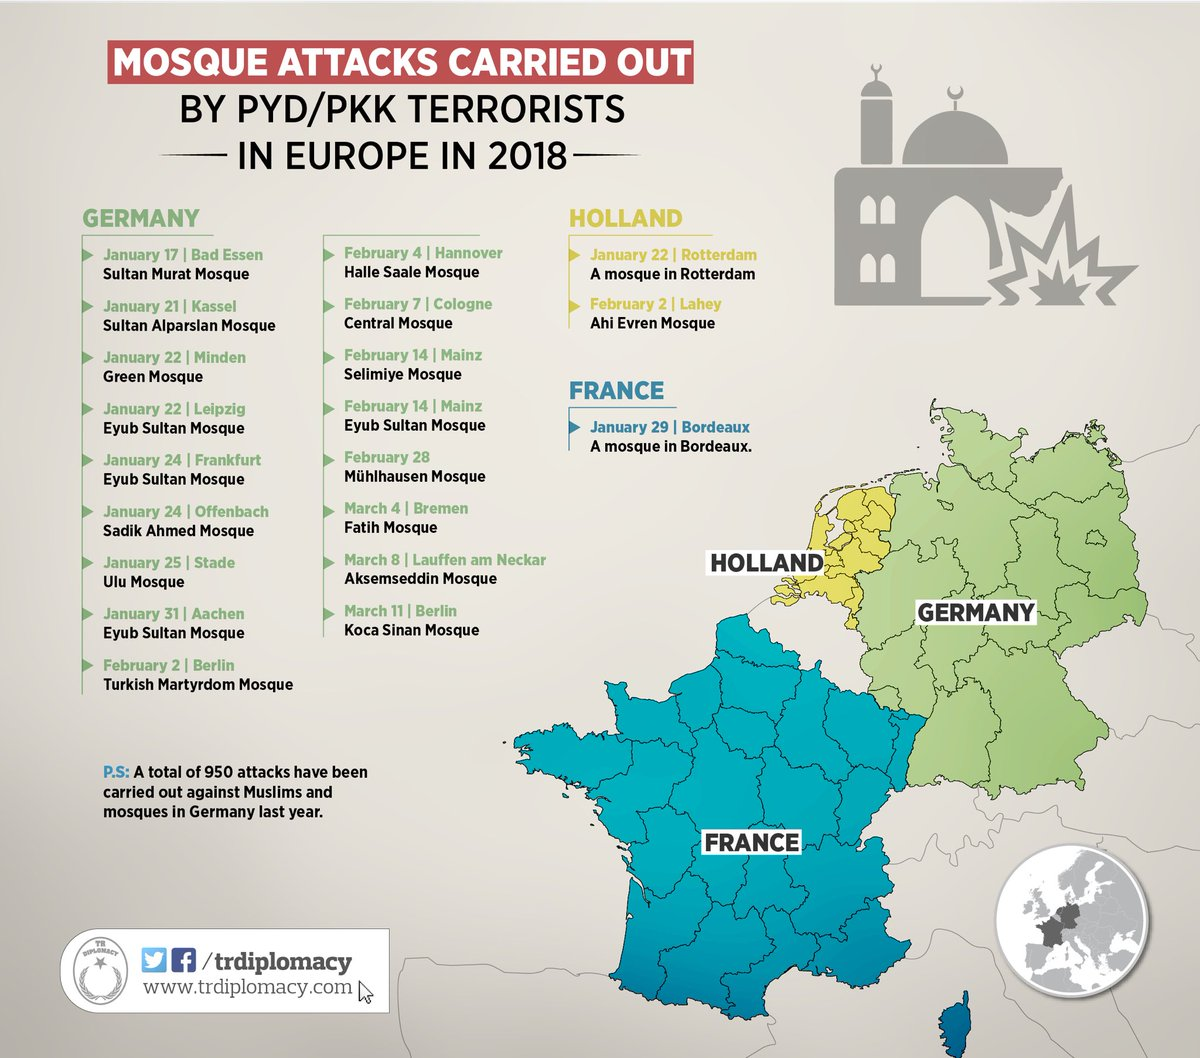 PKK/PYD terrorists are attacking mosques in Europe and European governments have yet to do something about it